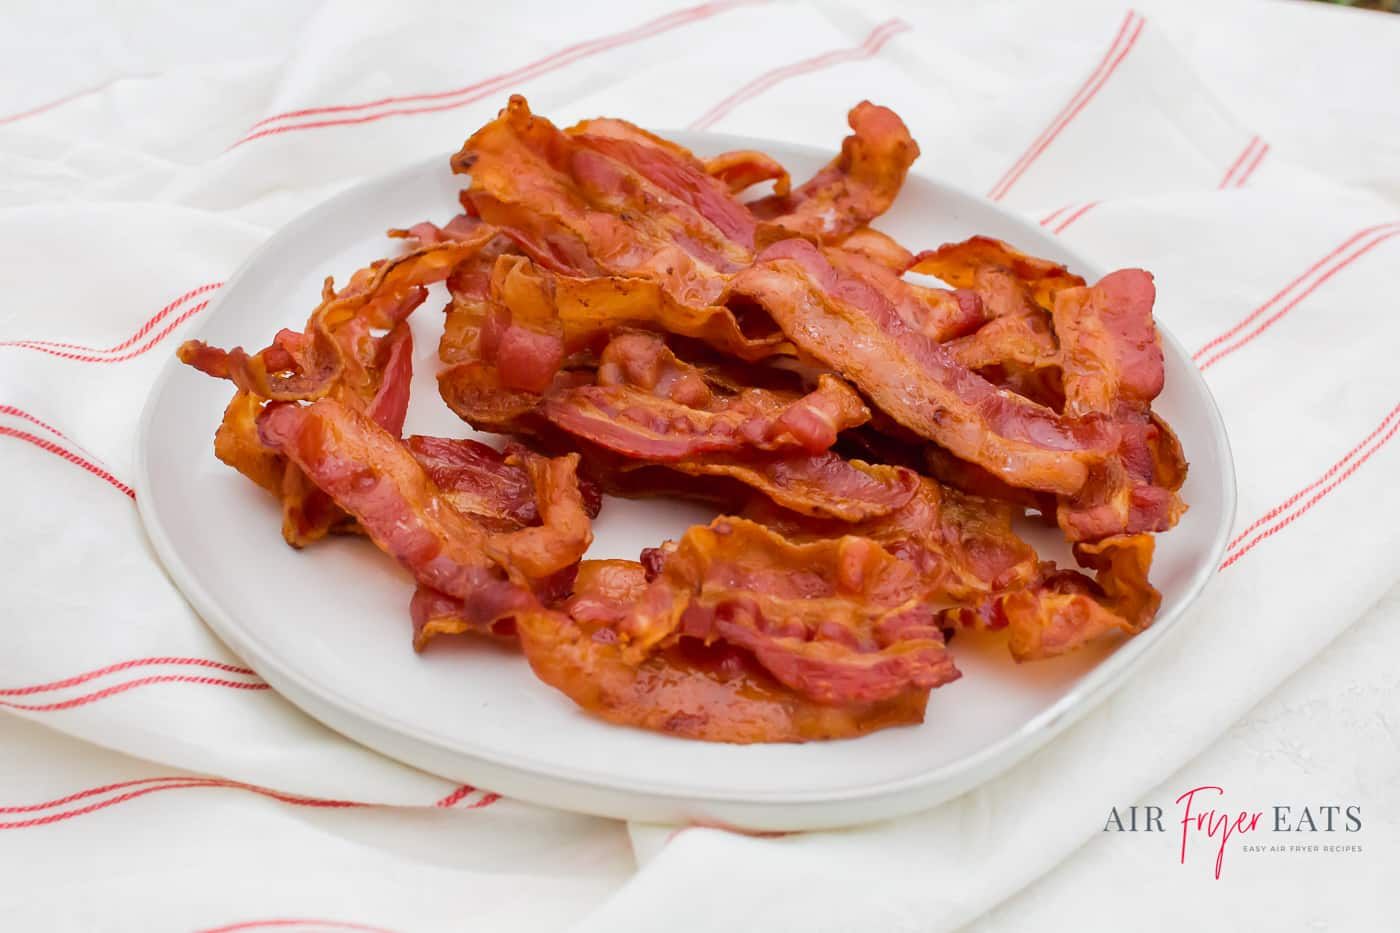 a pile of bacon pieces on a white plate on top of a red and white flour sack cloth